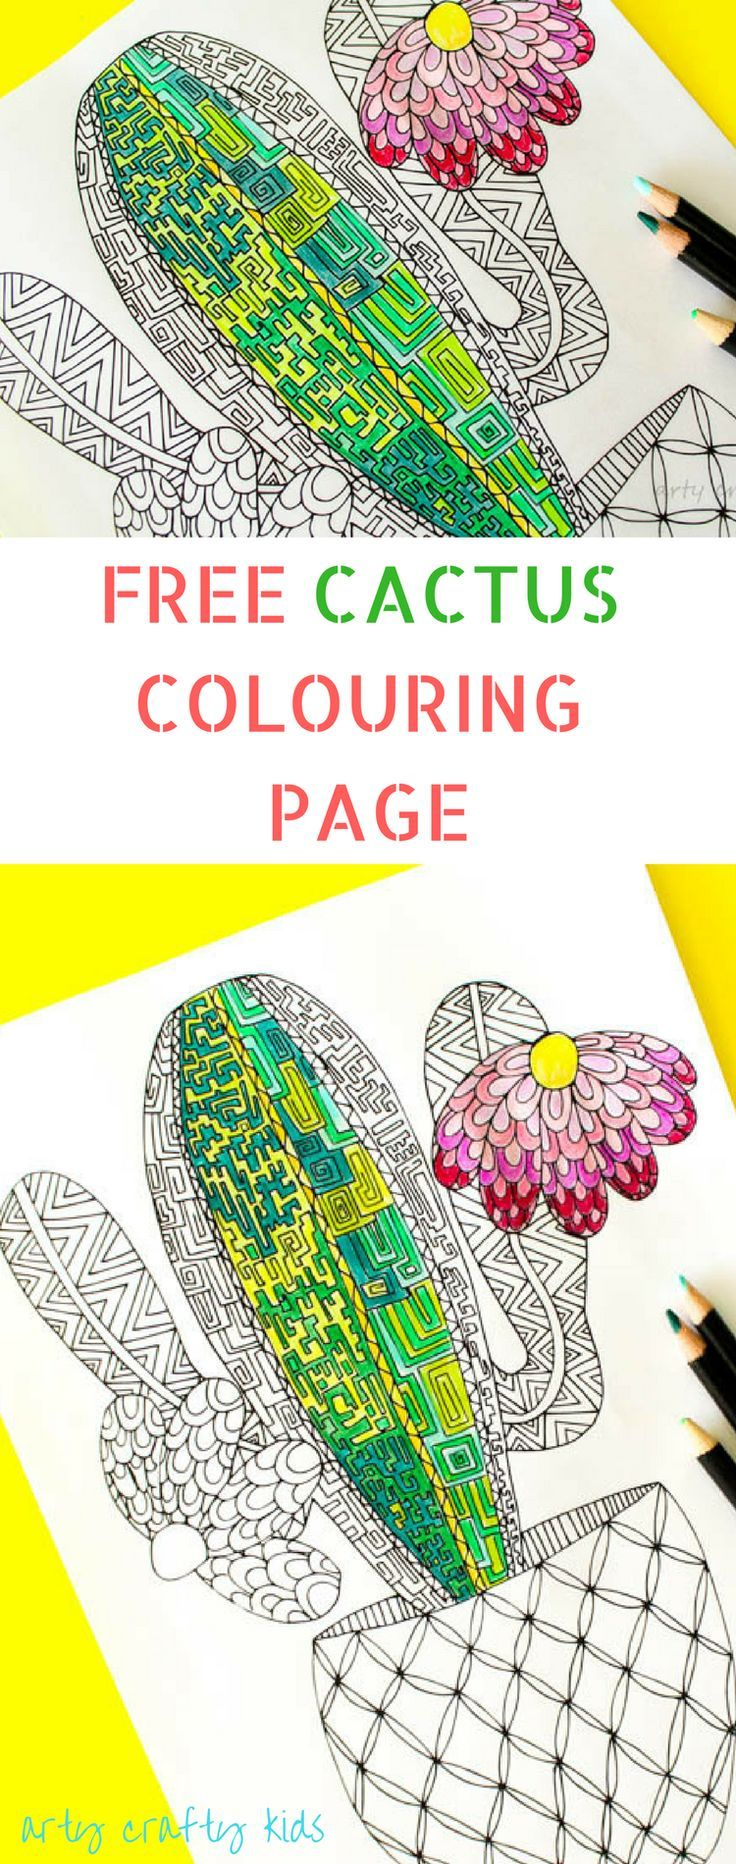 205 best Coloring Pages images on Pinterest | Crafty kids, Adult ...